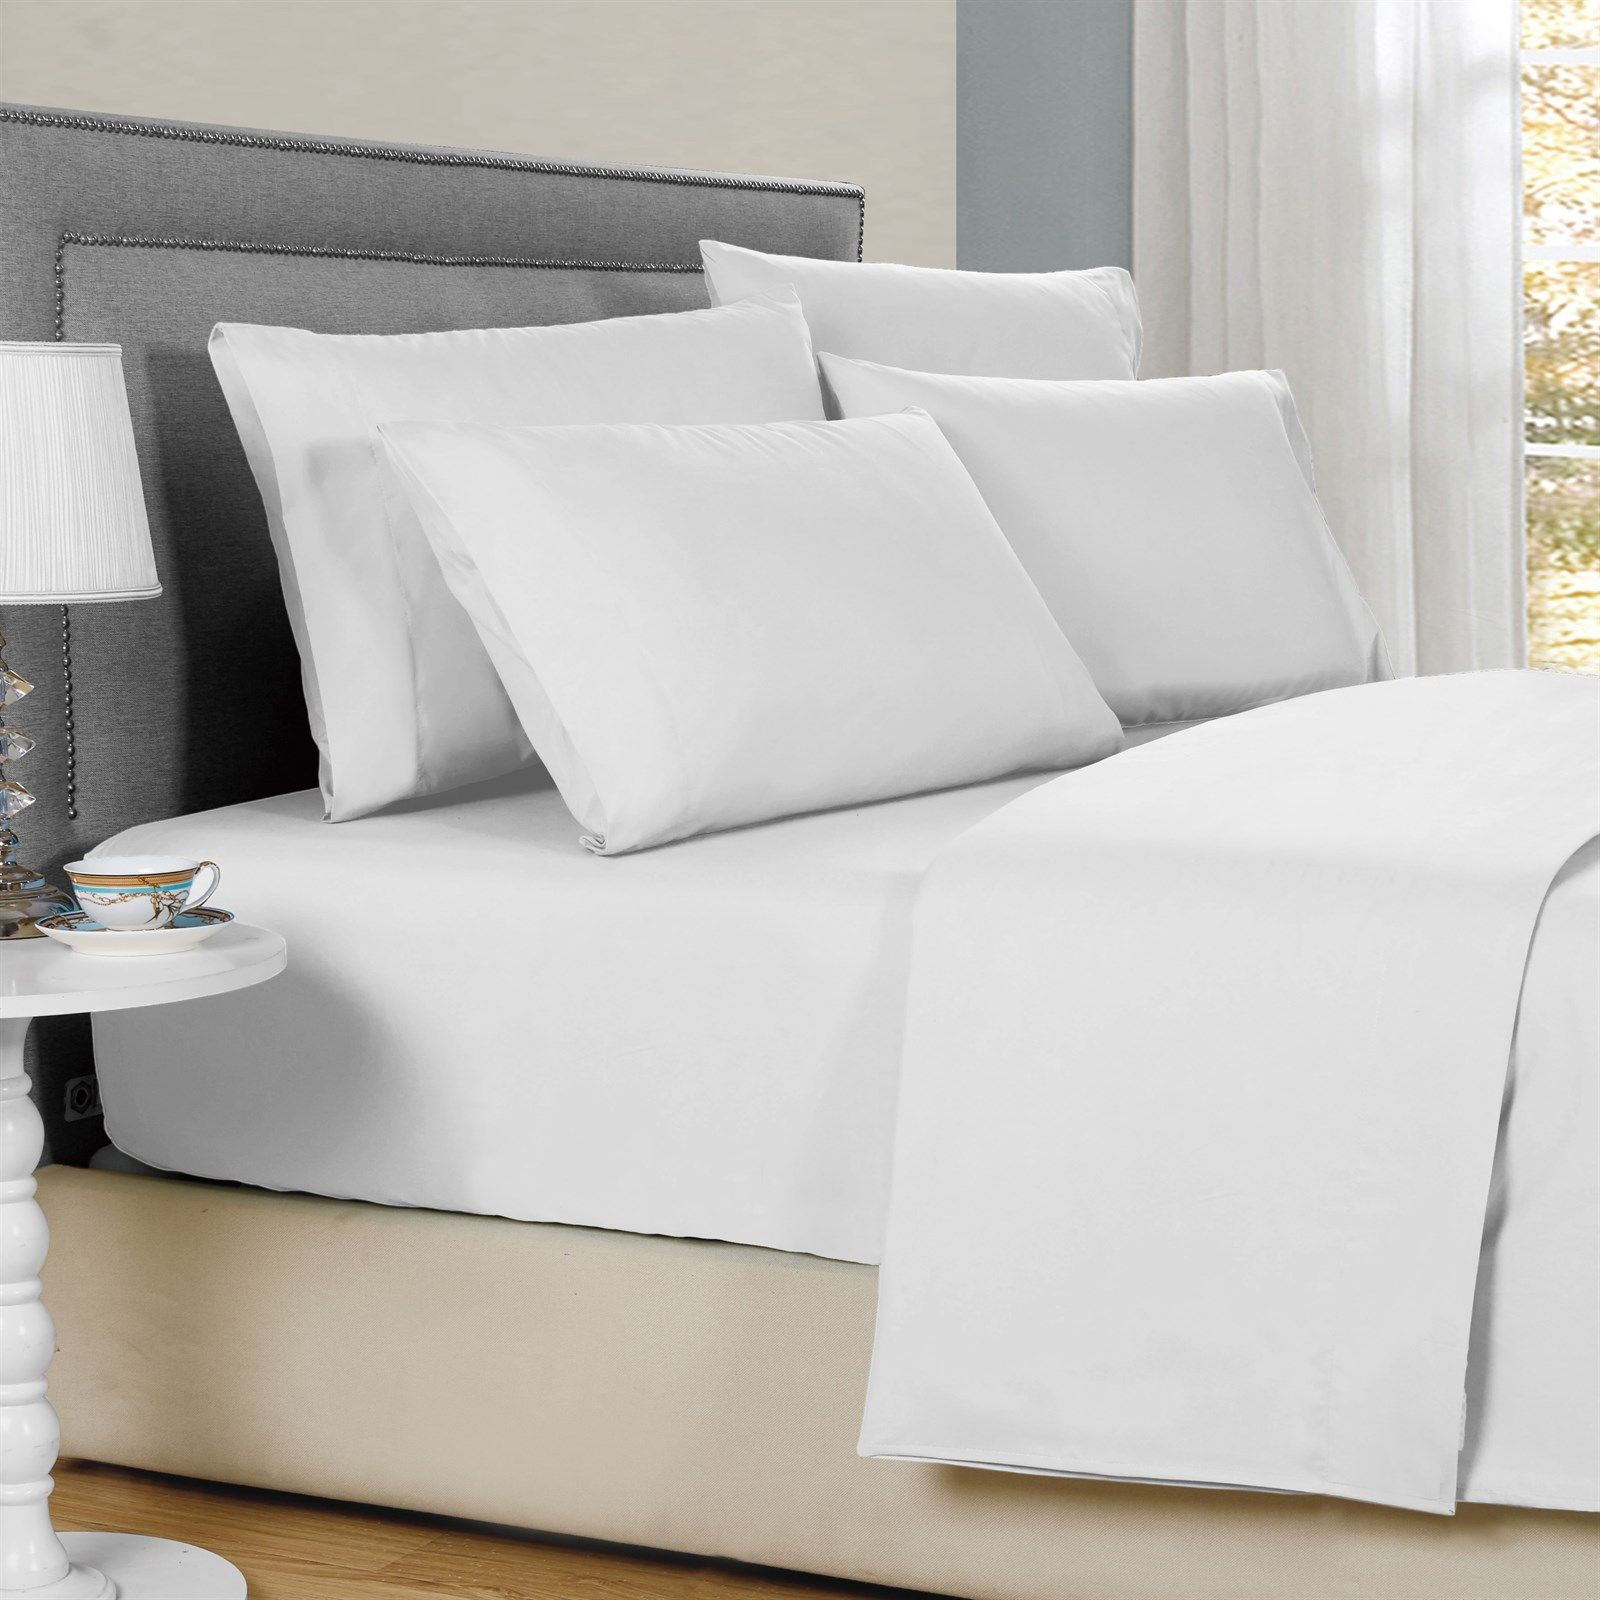 Bamboo 6 Pc Solid Sheet Sets 1800 Count Sheet Sets Home Bed